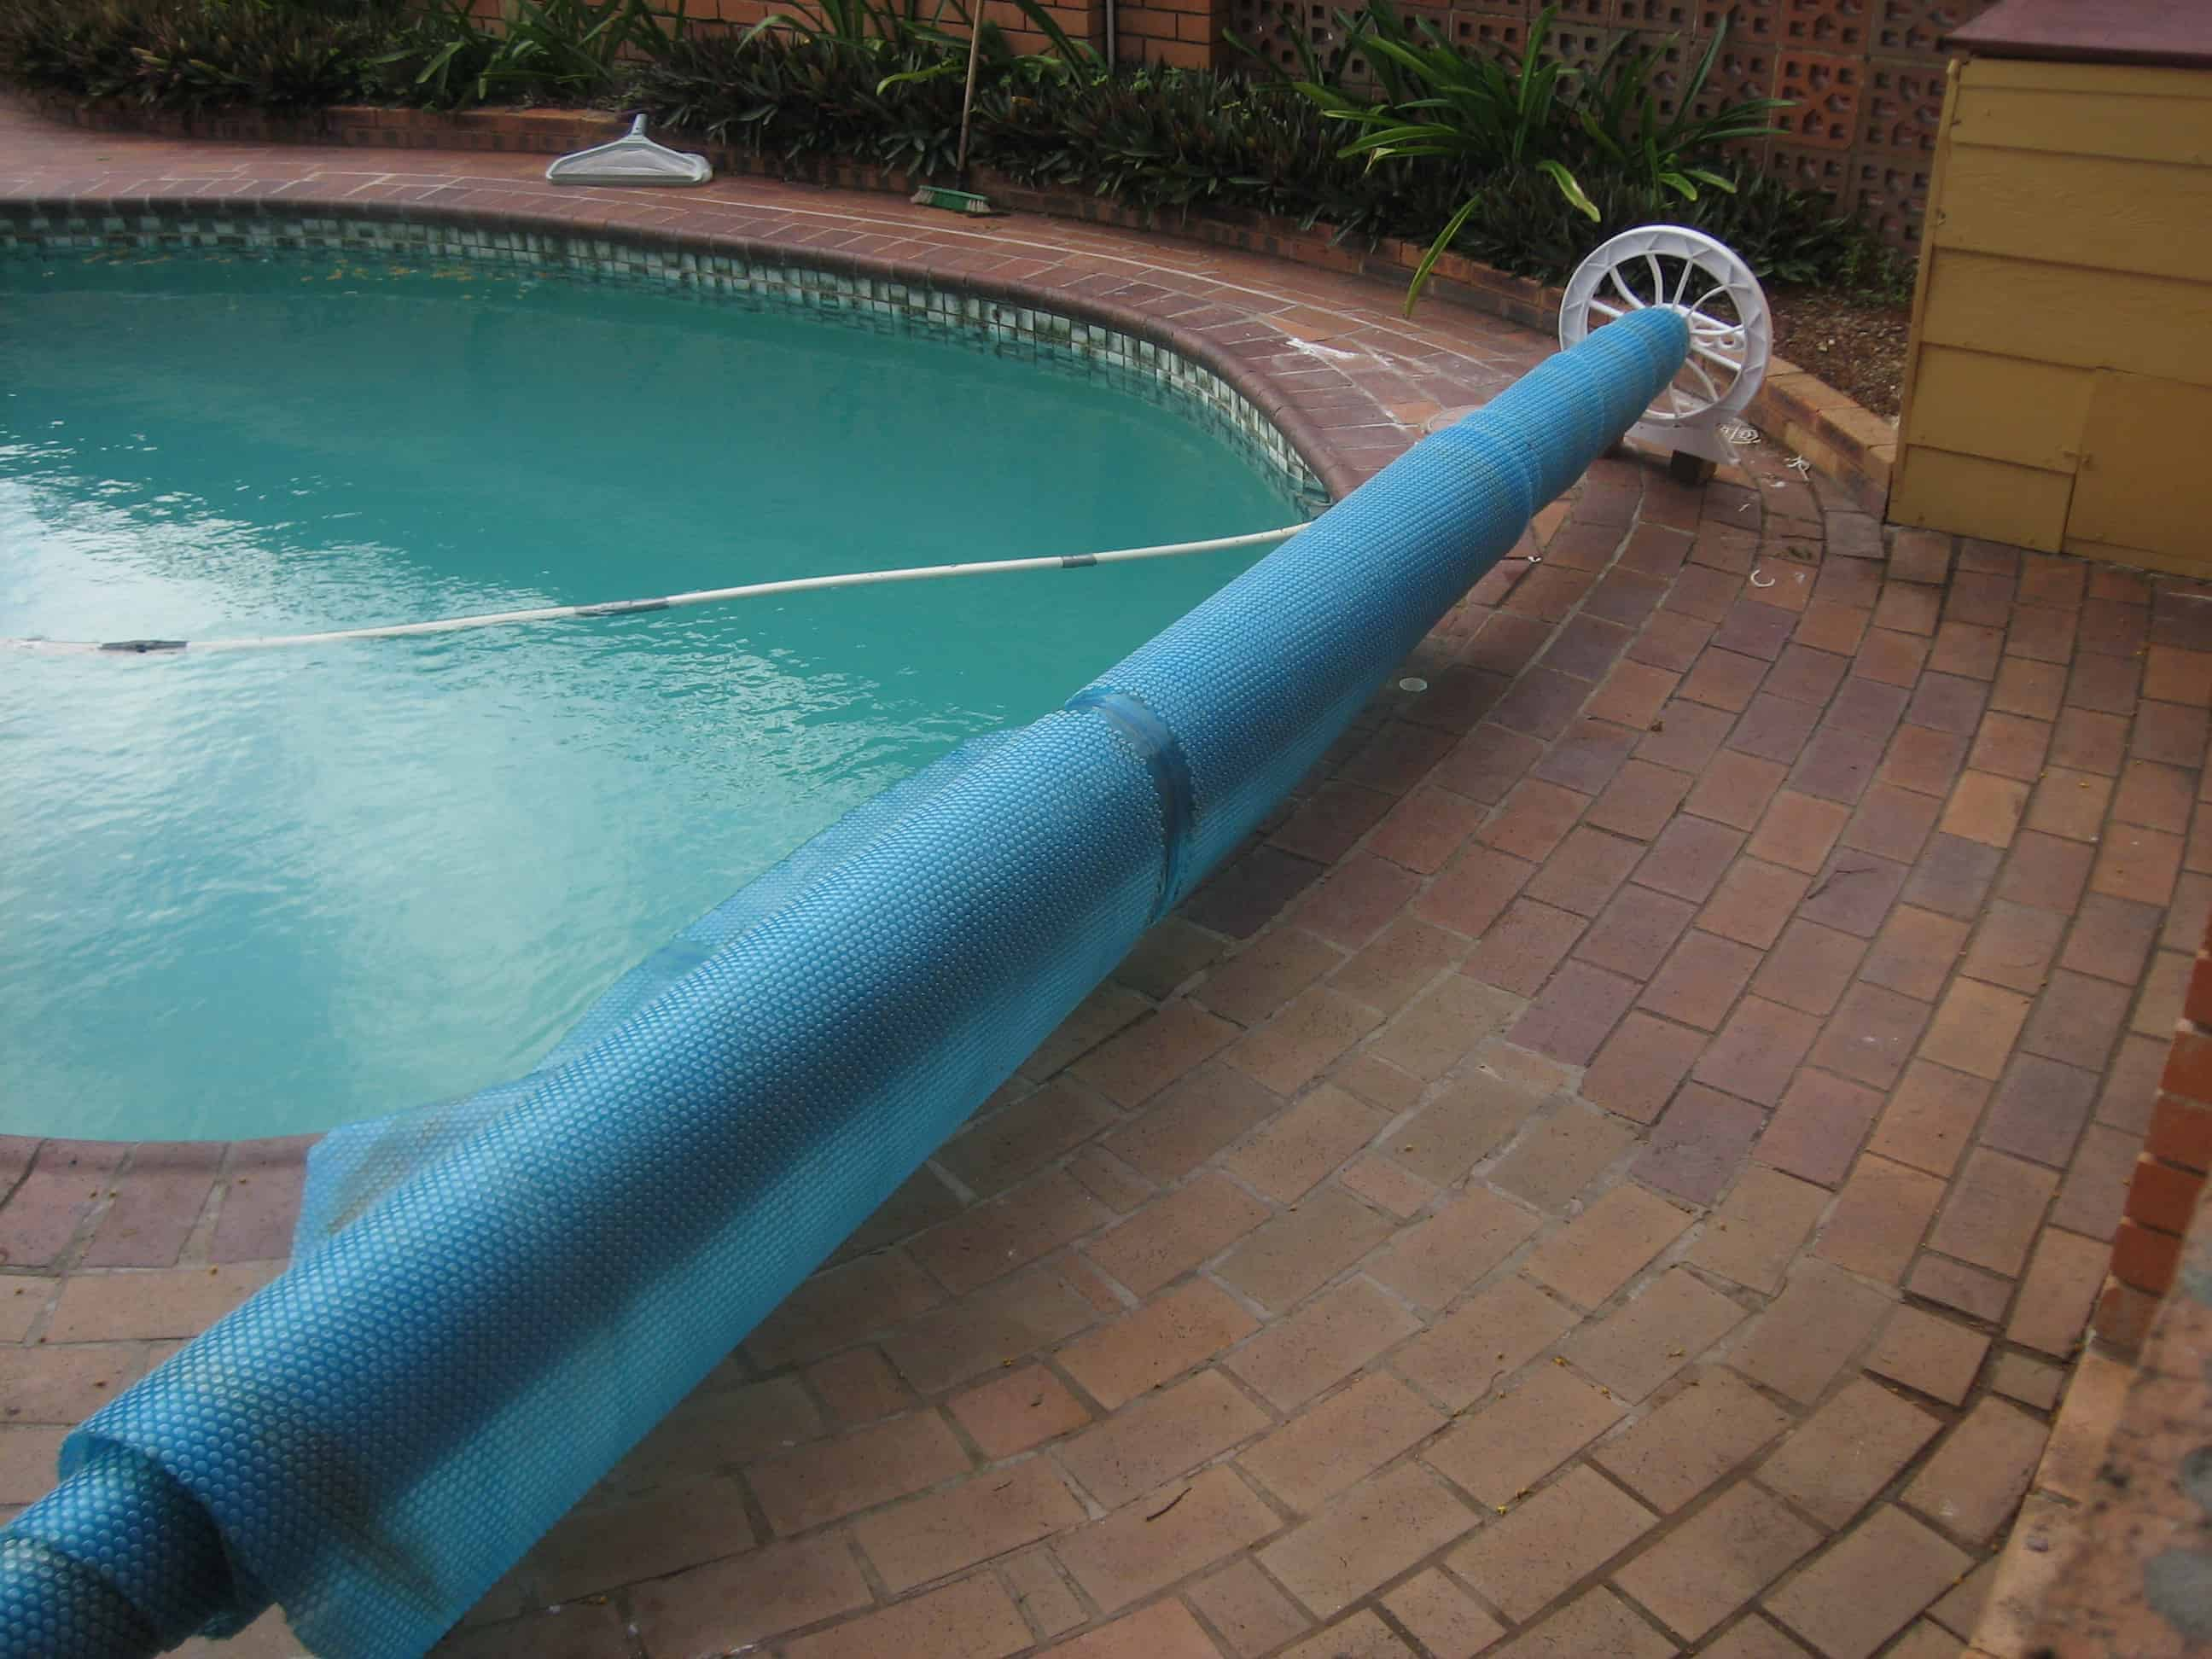 Top 10 Best Swimming Pool Cover Reels Reviews (UPDATED 2019)